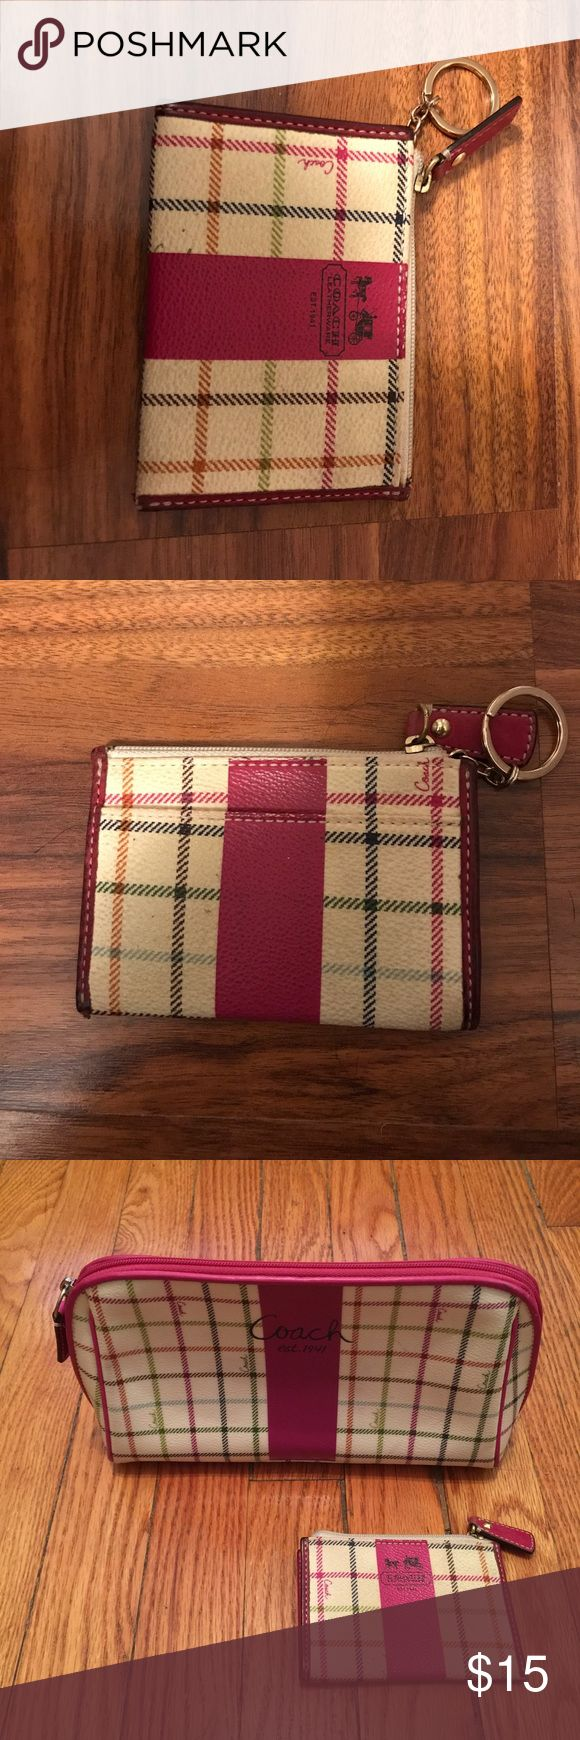 Spotted while shopping on Poshmark: Coach Poppy Mini Skinny Wallet in Pink Plaid! #poshmark #fashion #shopping #style #Coach #Handbags